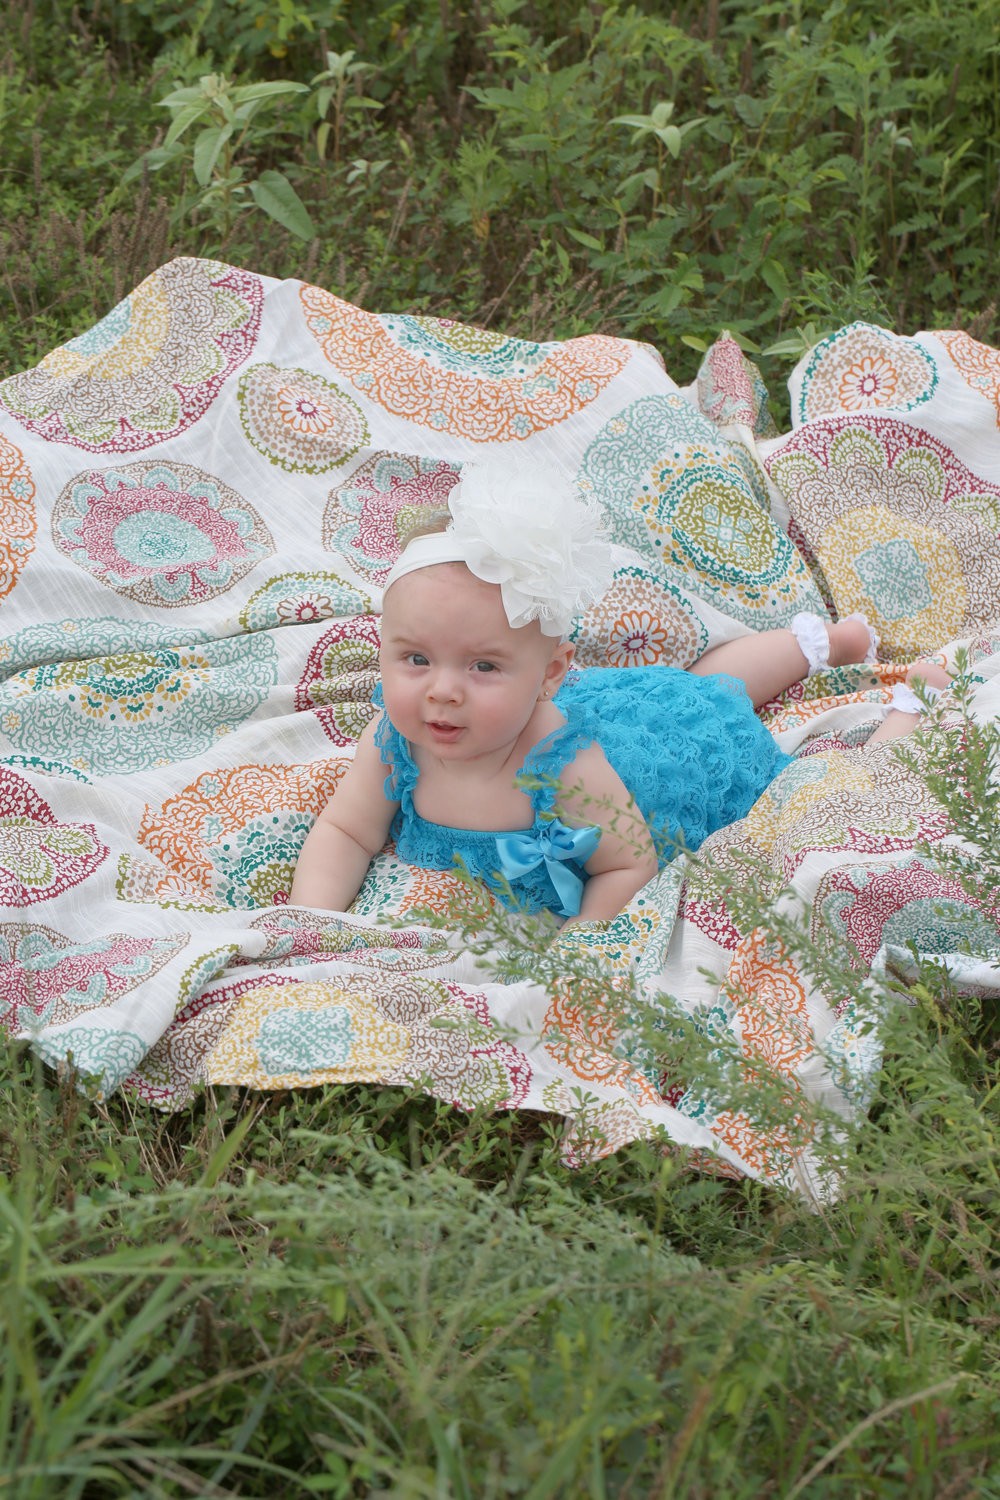 caidy_5month_016.jpg